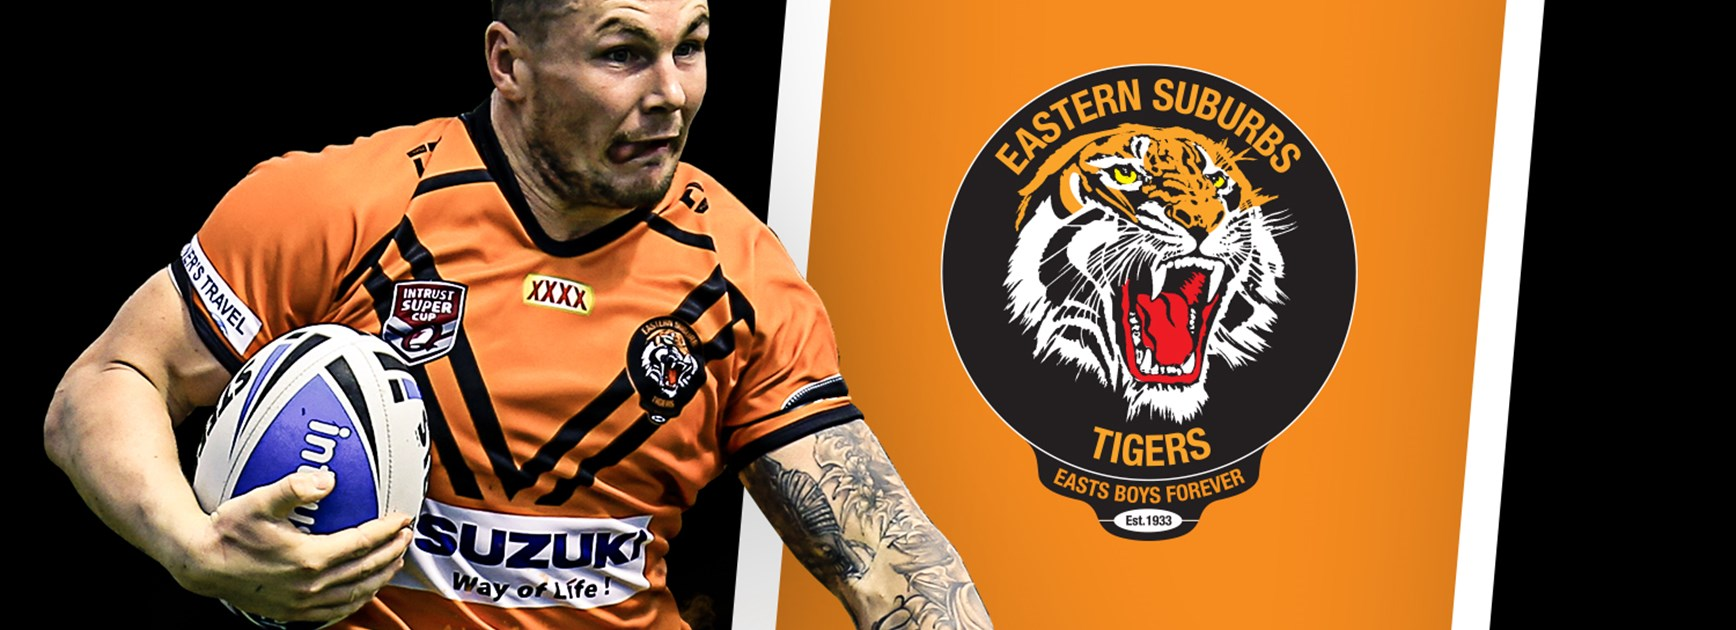 Easts Tigers gains and losses